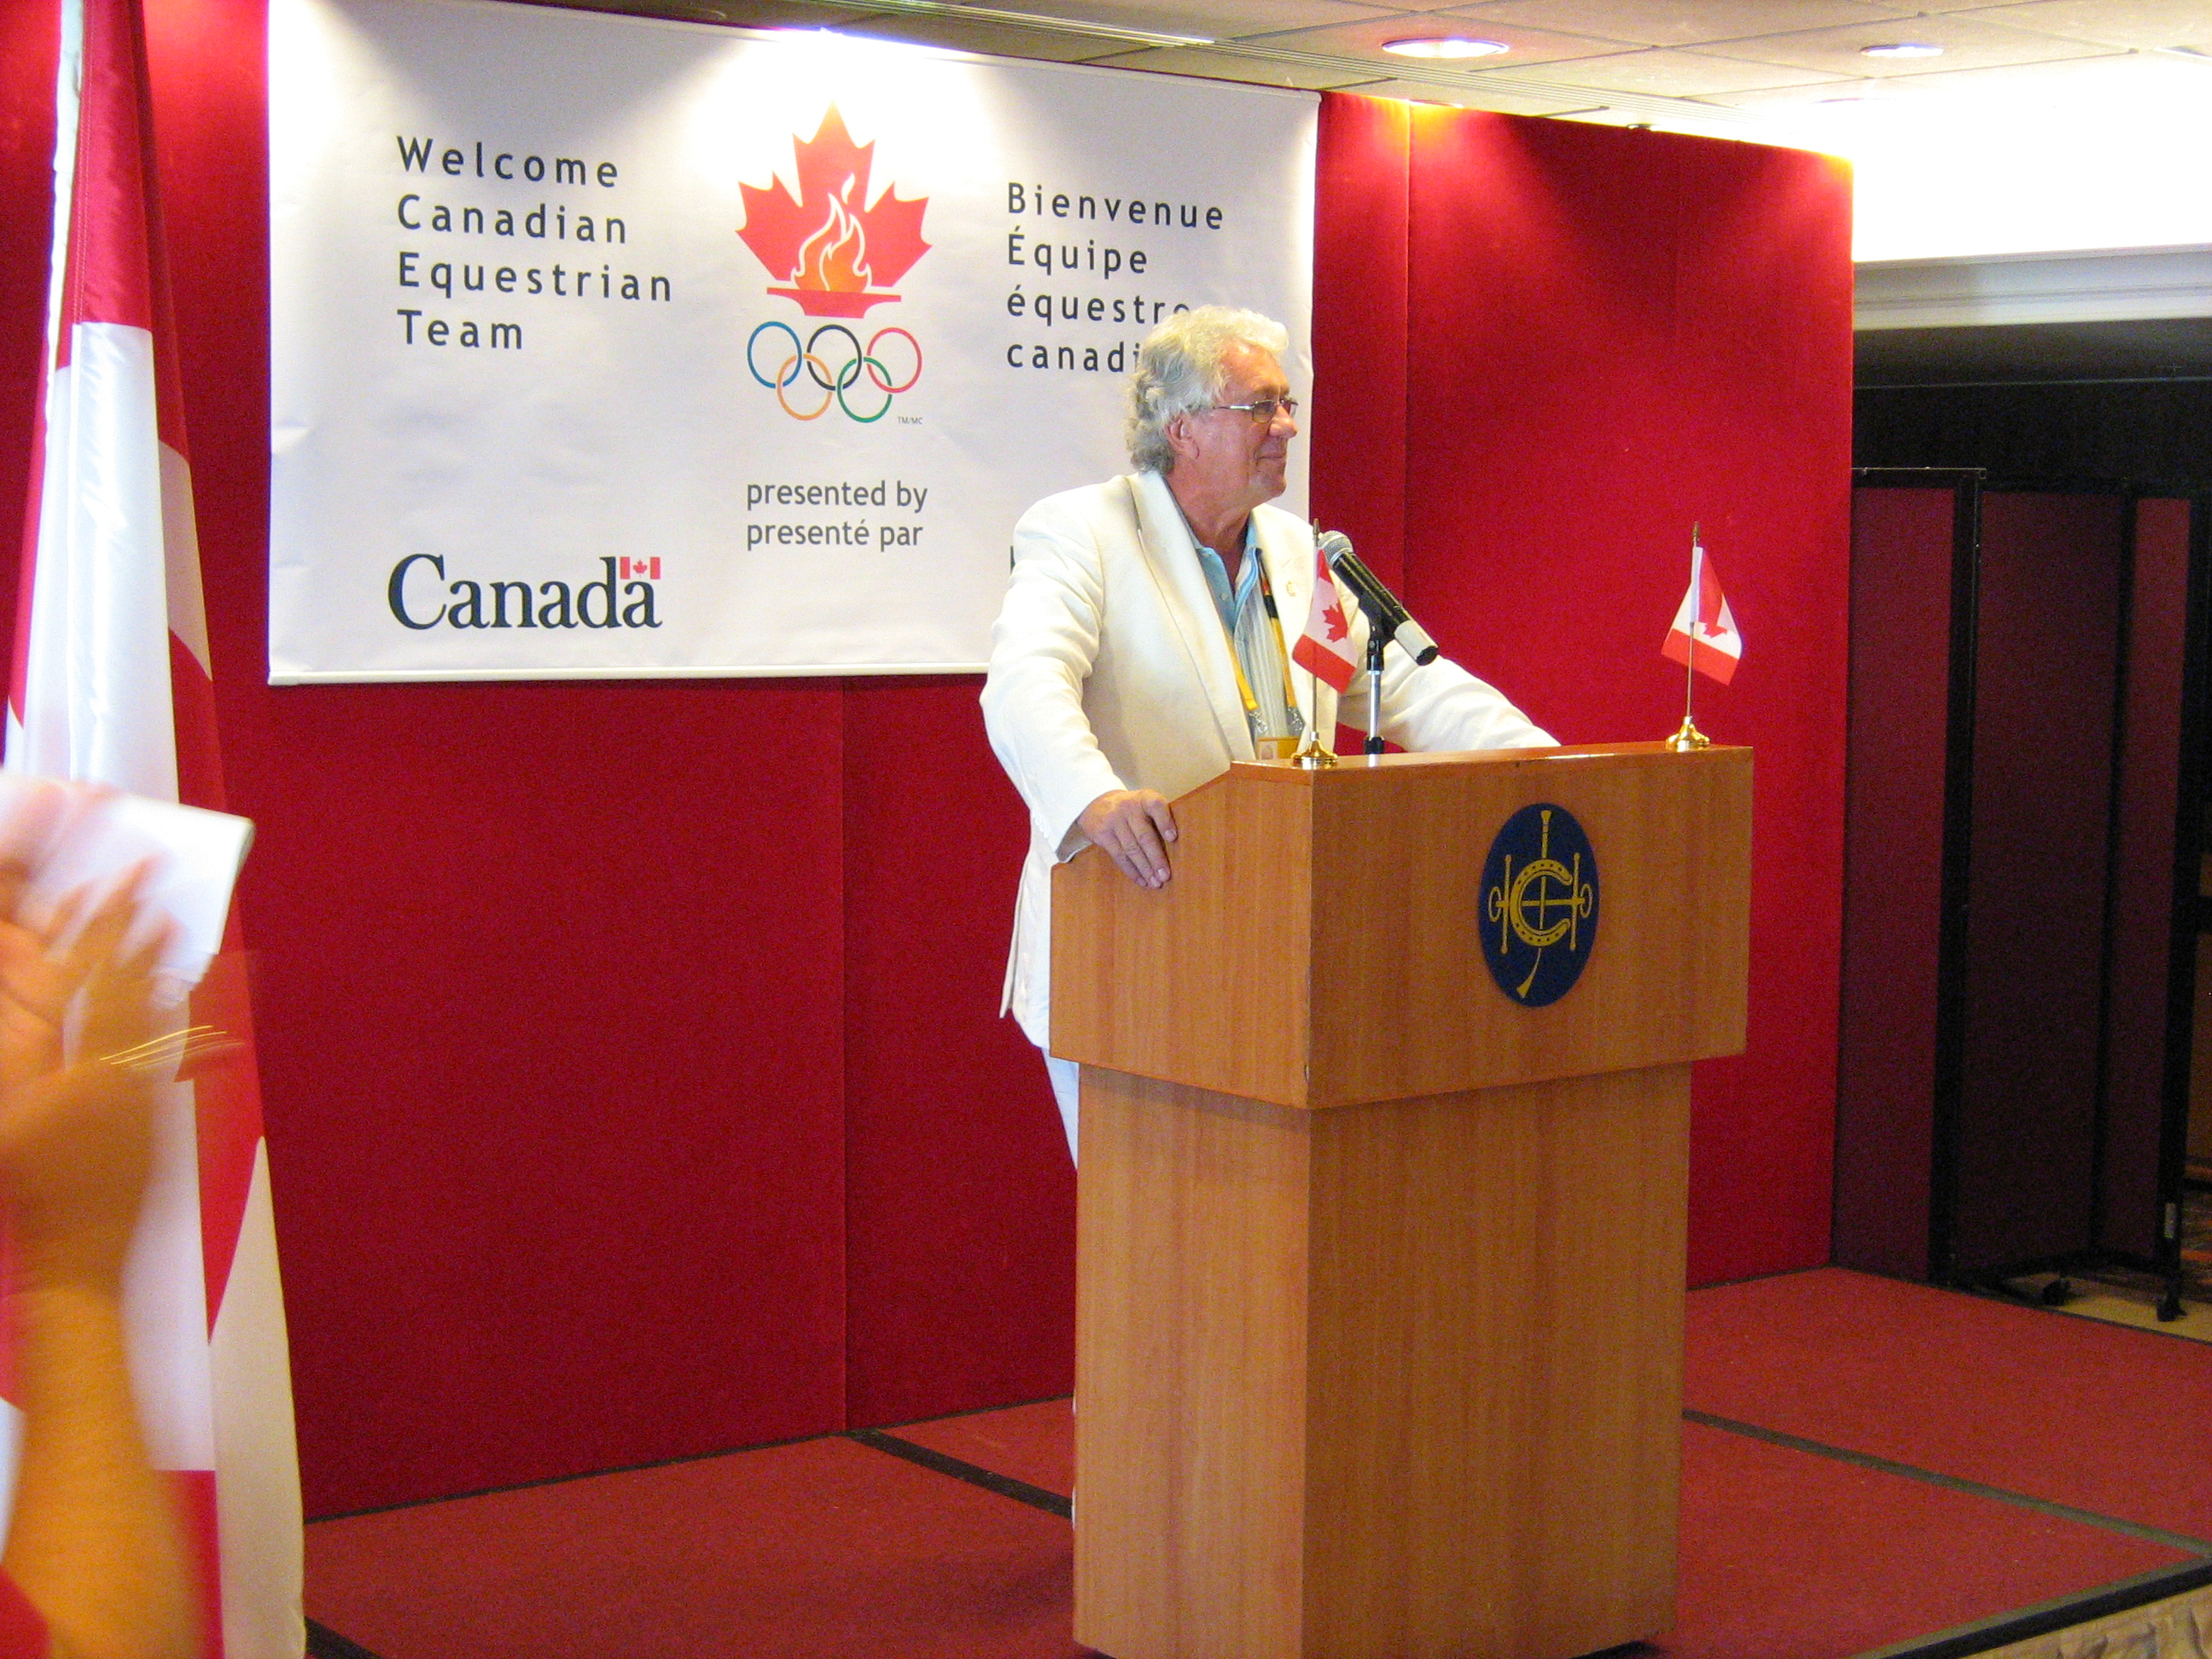 Chris Rudge, CEO of the Canadian Olympic Committee